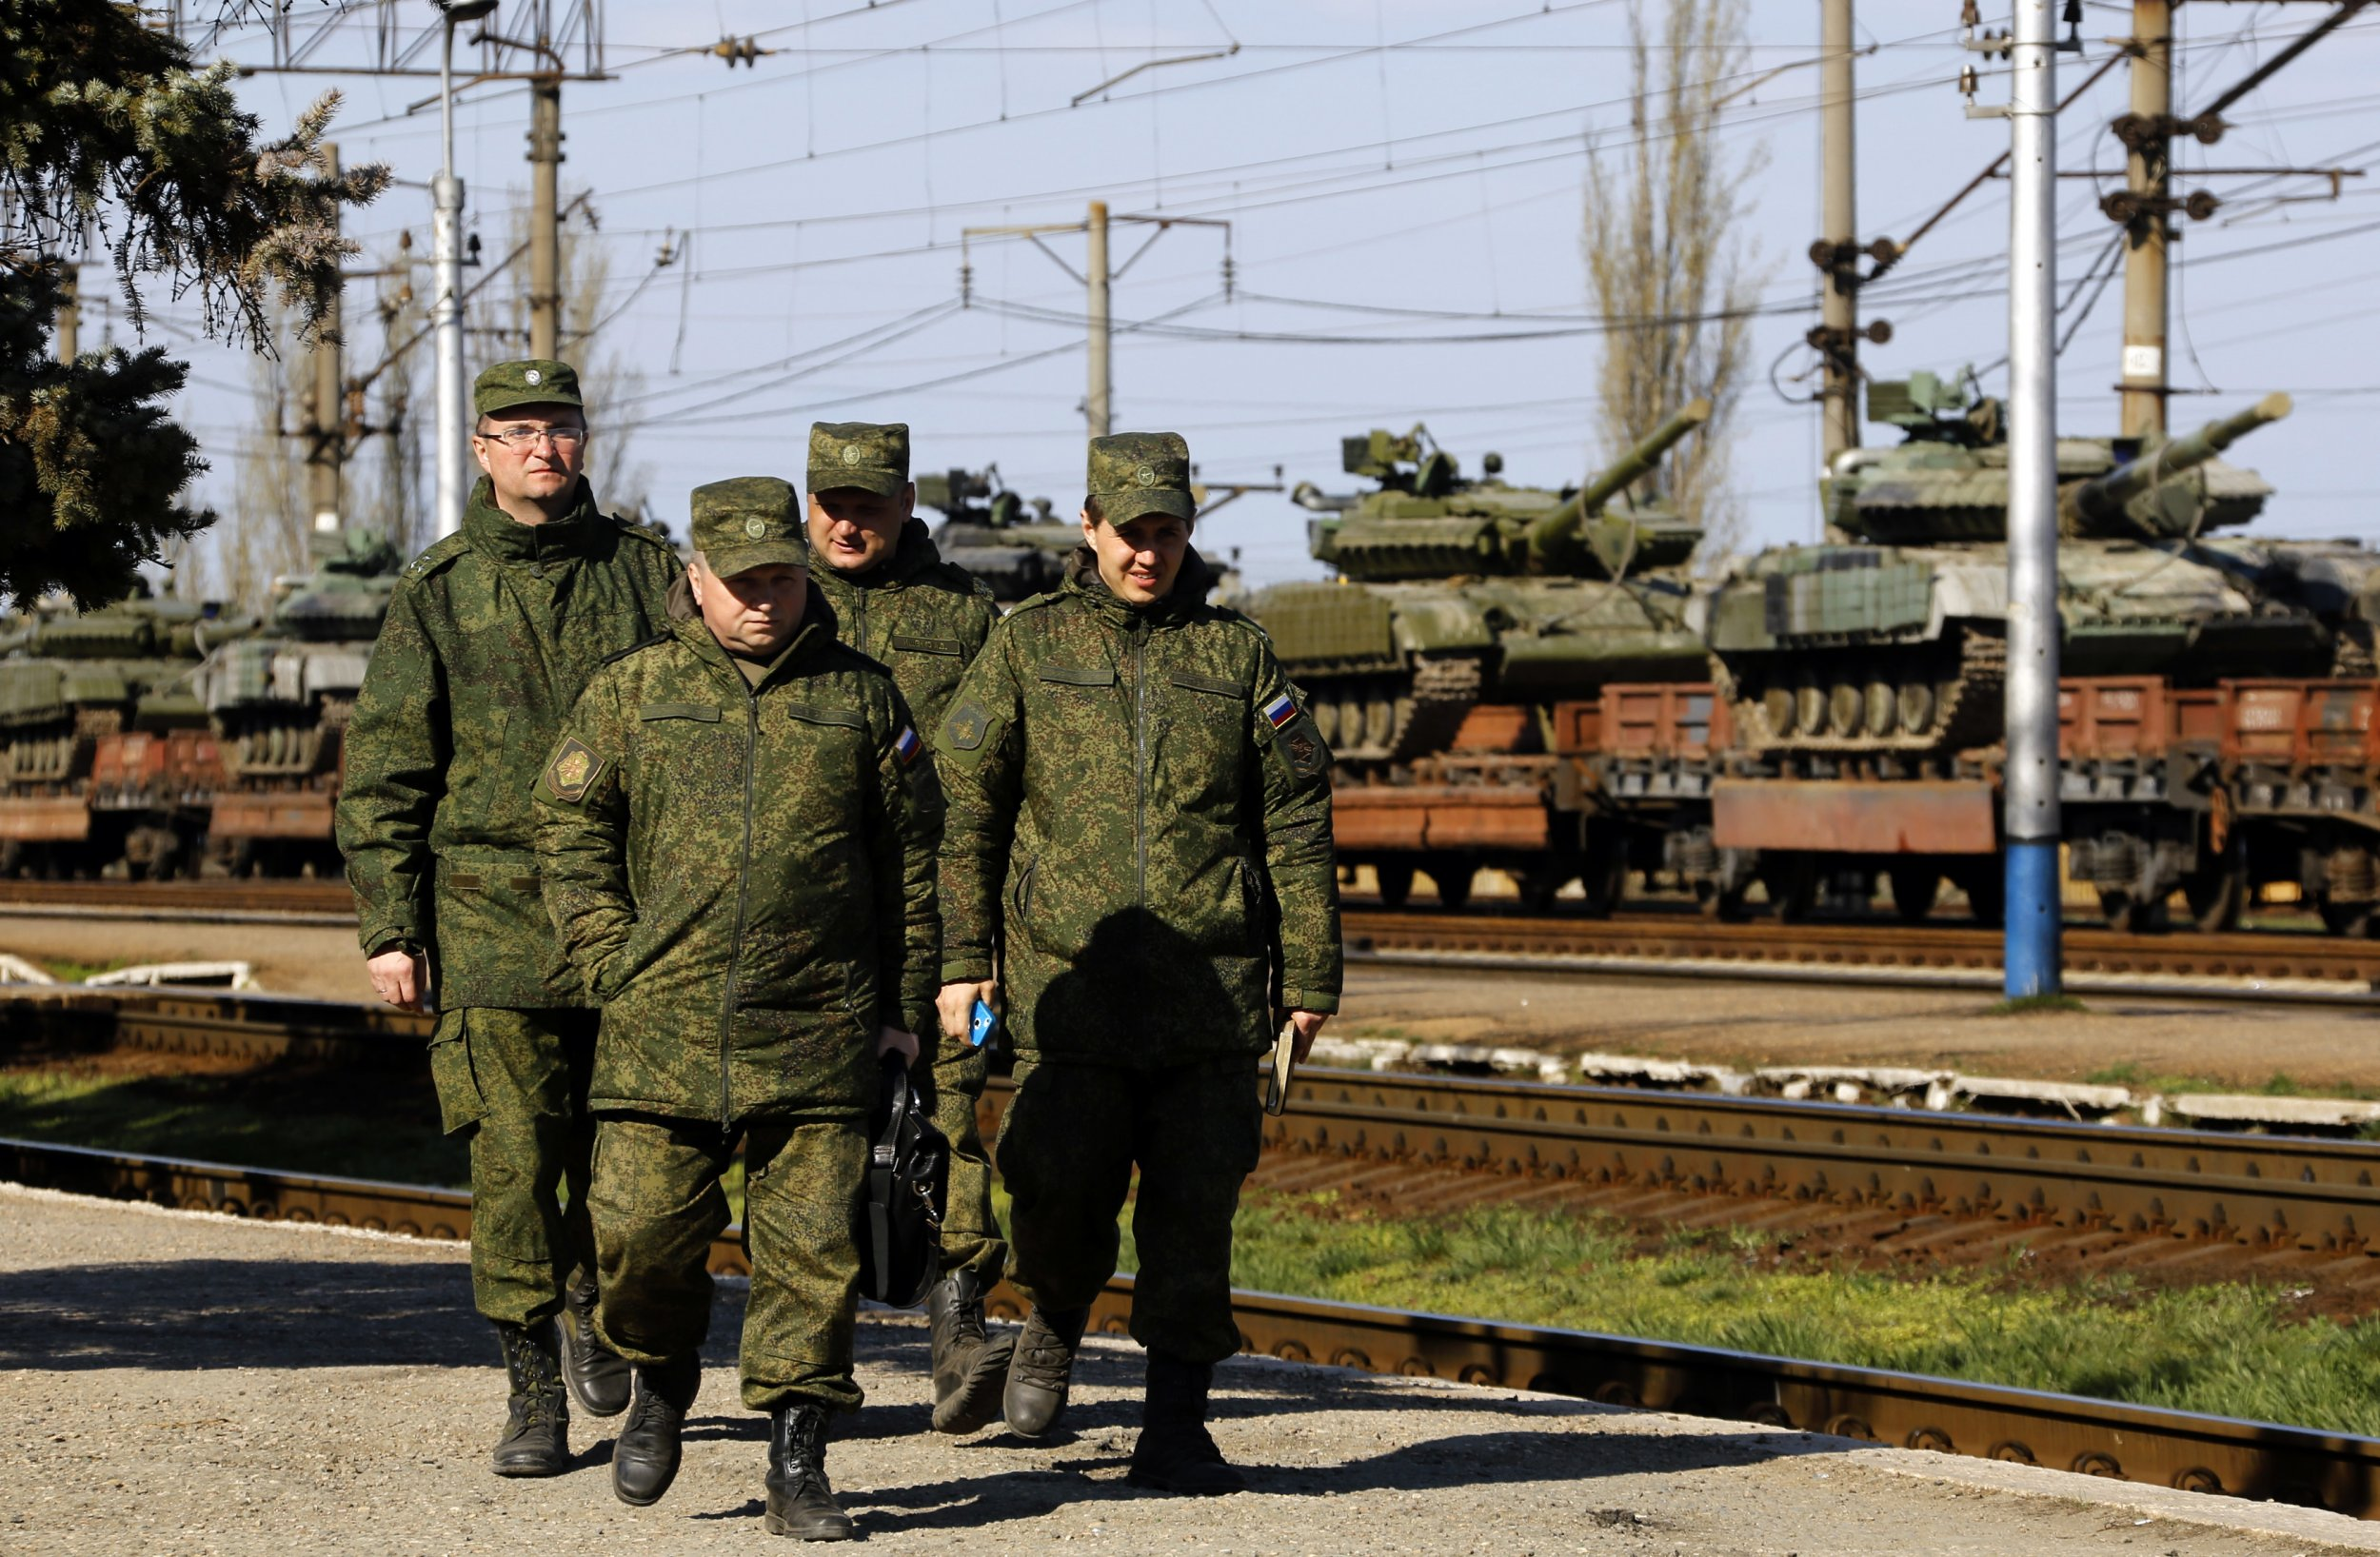 Jehovah S Witnesses In Crimea Ordered To Renounce Faith Or Fight For Occupying Russian Army